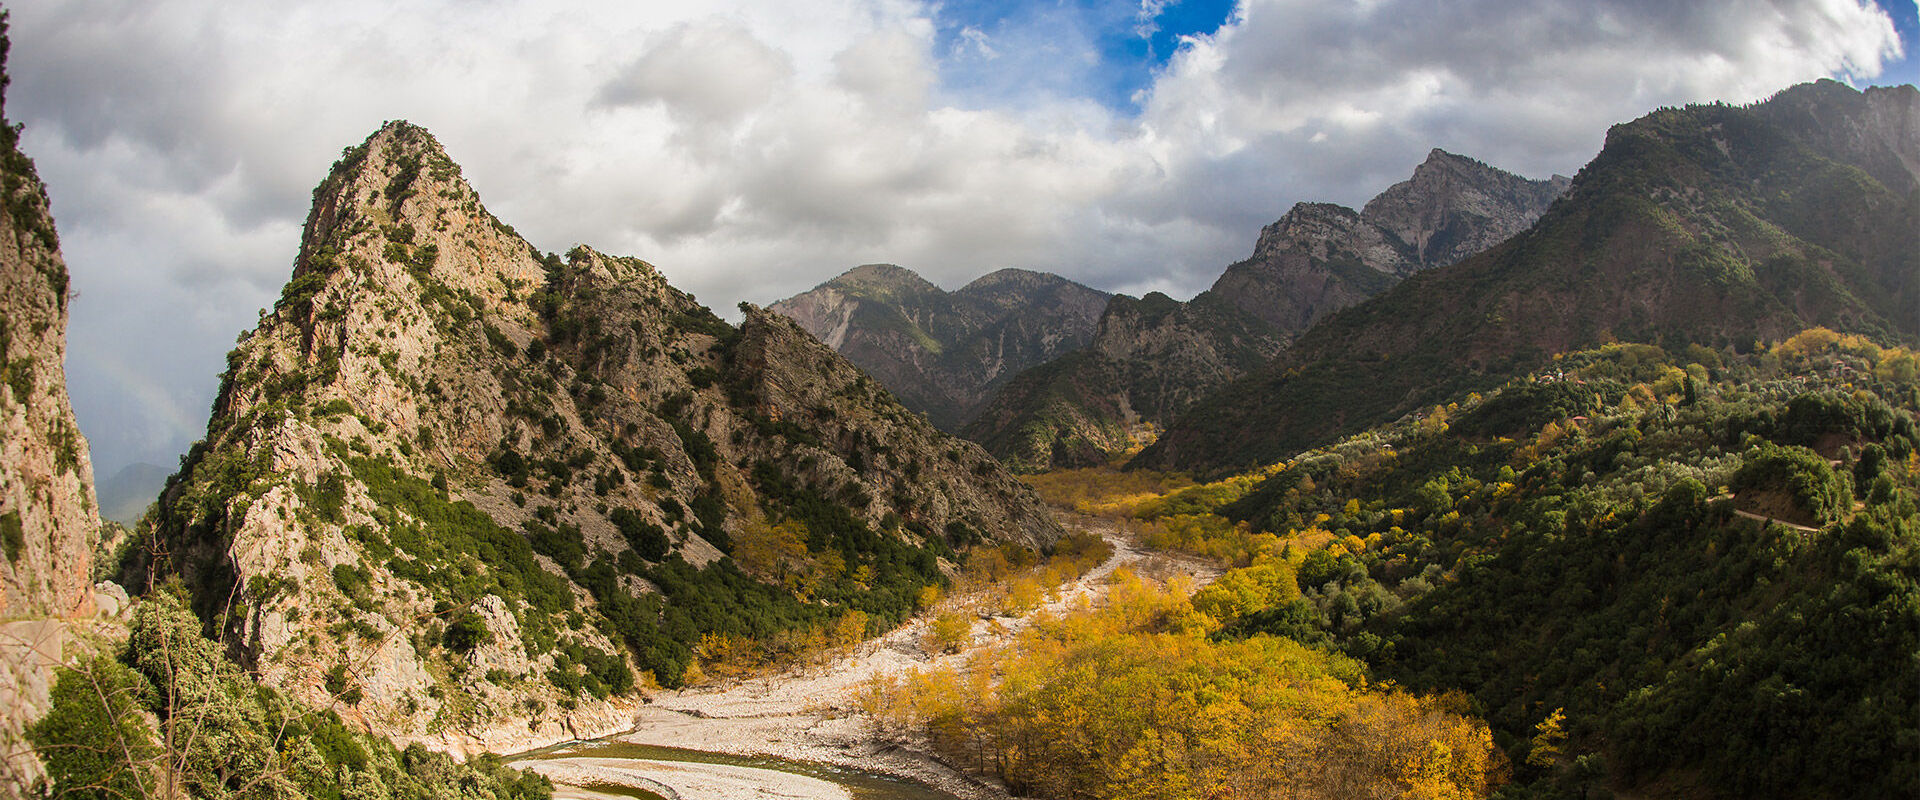 Scenic mountain autumn landscape with a river near Karpenisi